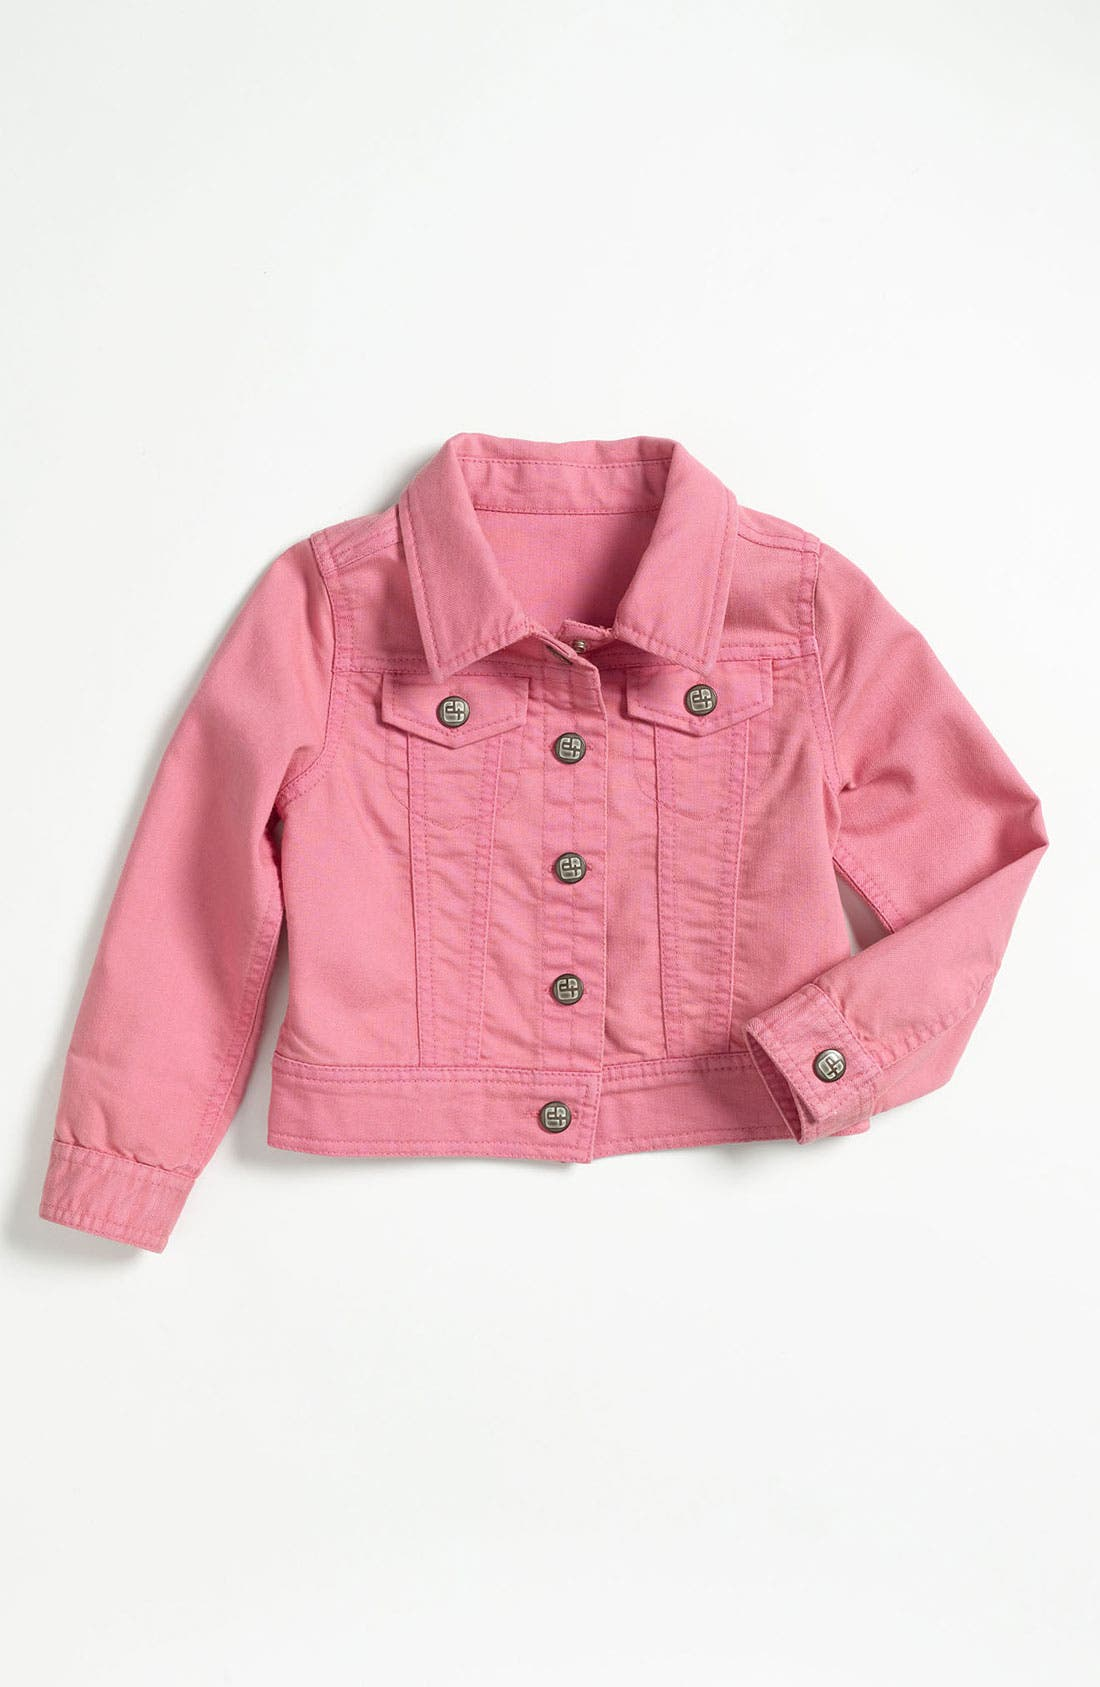 Alternate Image 1 Selected - Tucker + Tate Denim Jacket (Toddler)